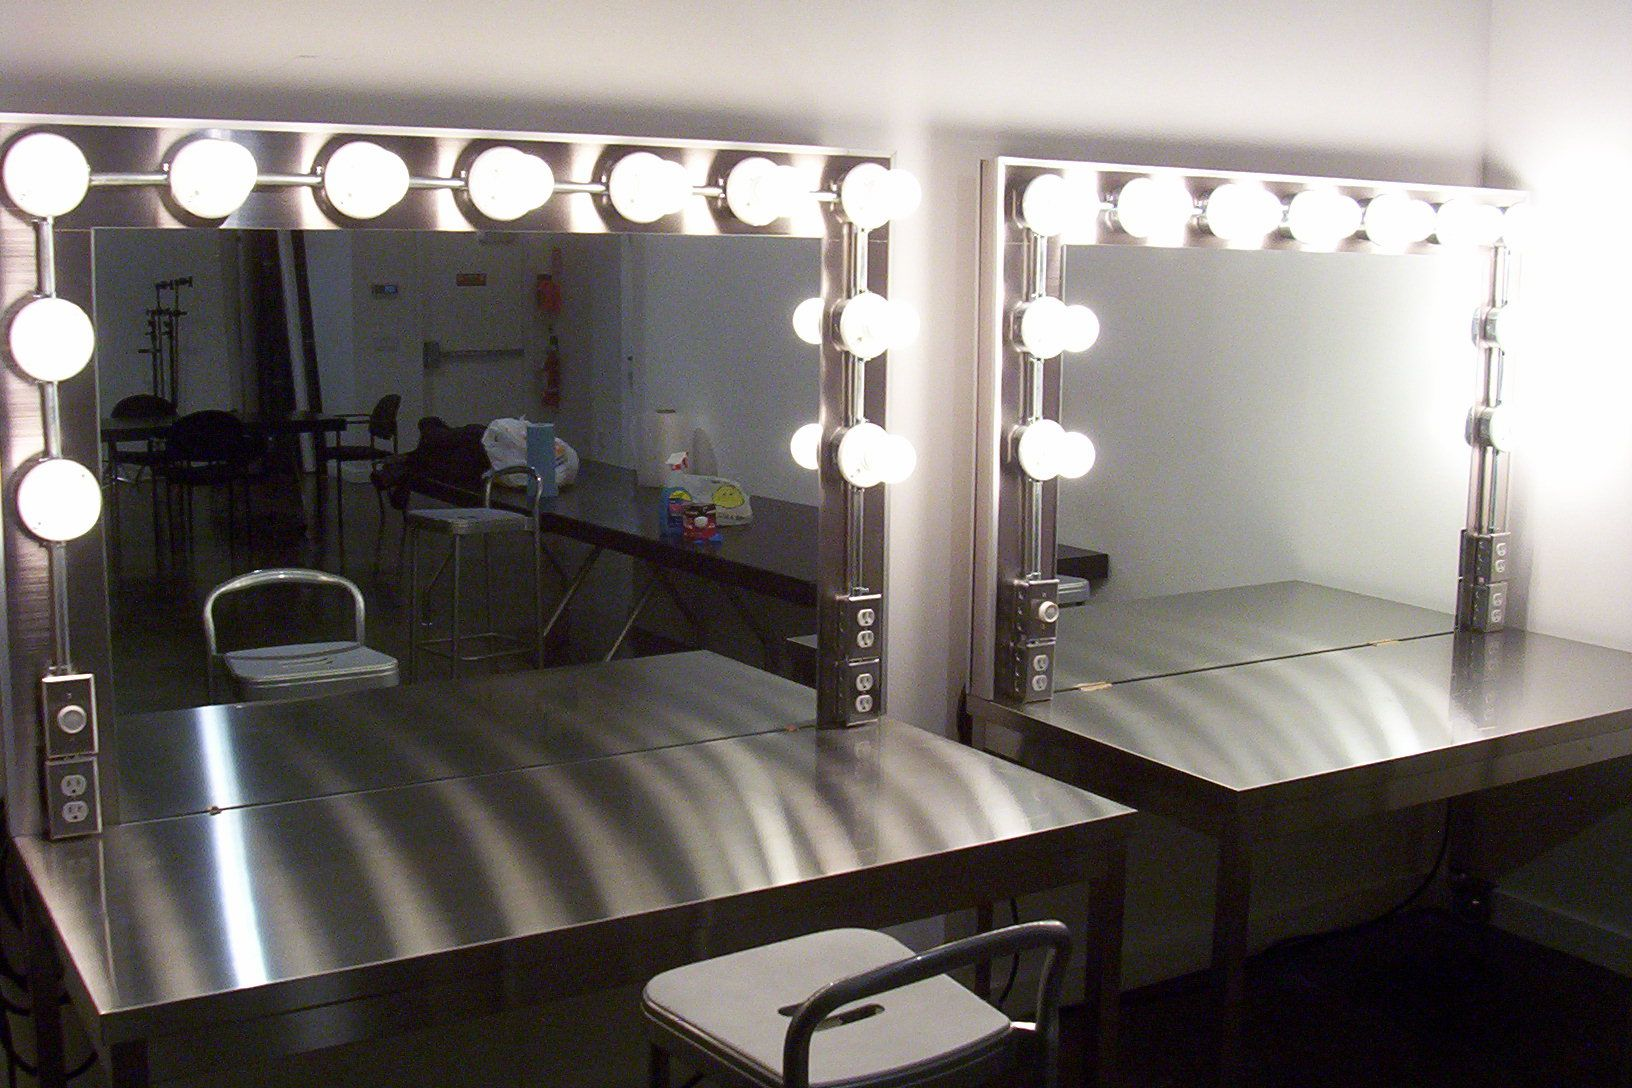 Replacement Makeup Room Lights Vanity Table With Lights Makeup Table With Lights Vanity Table